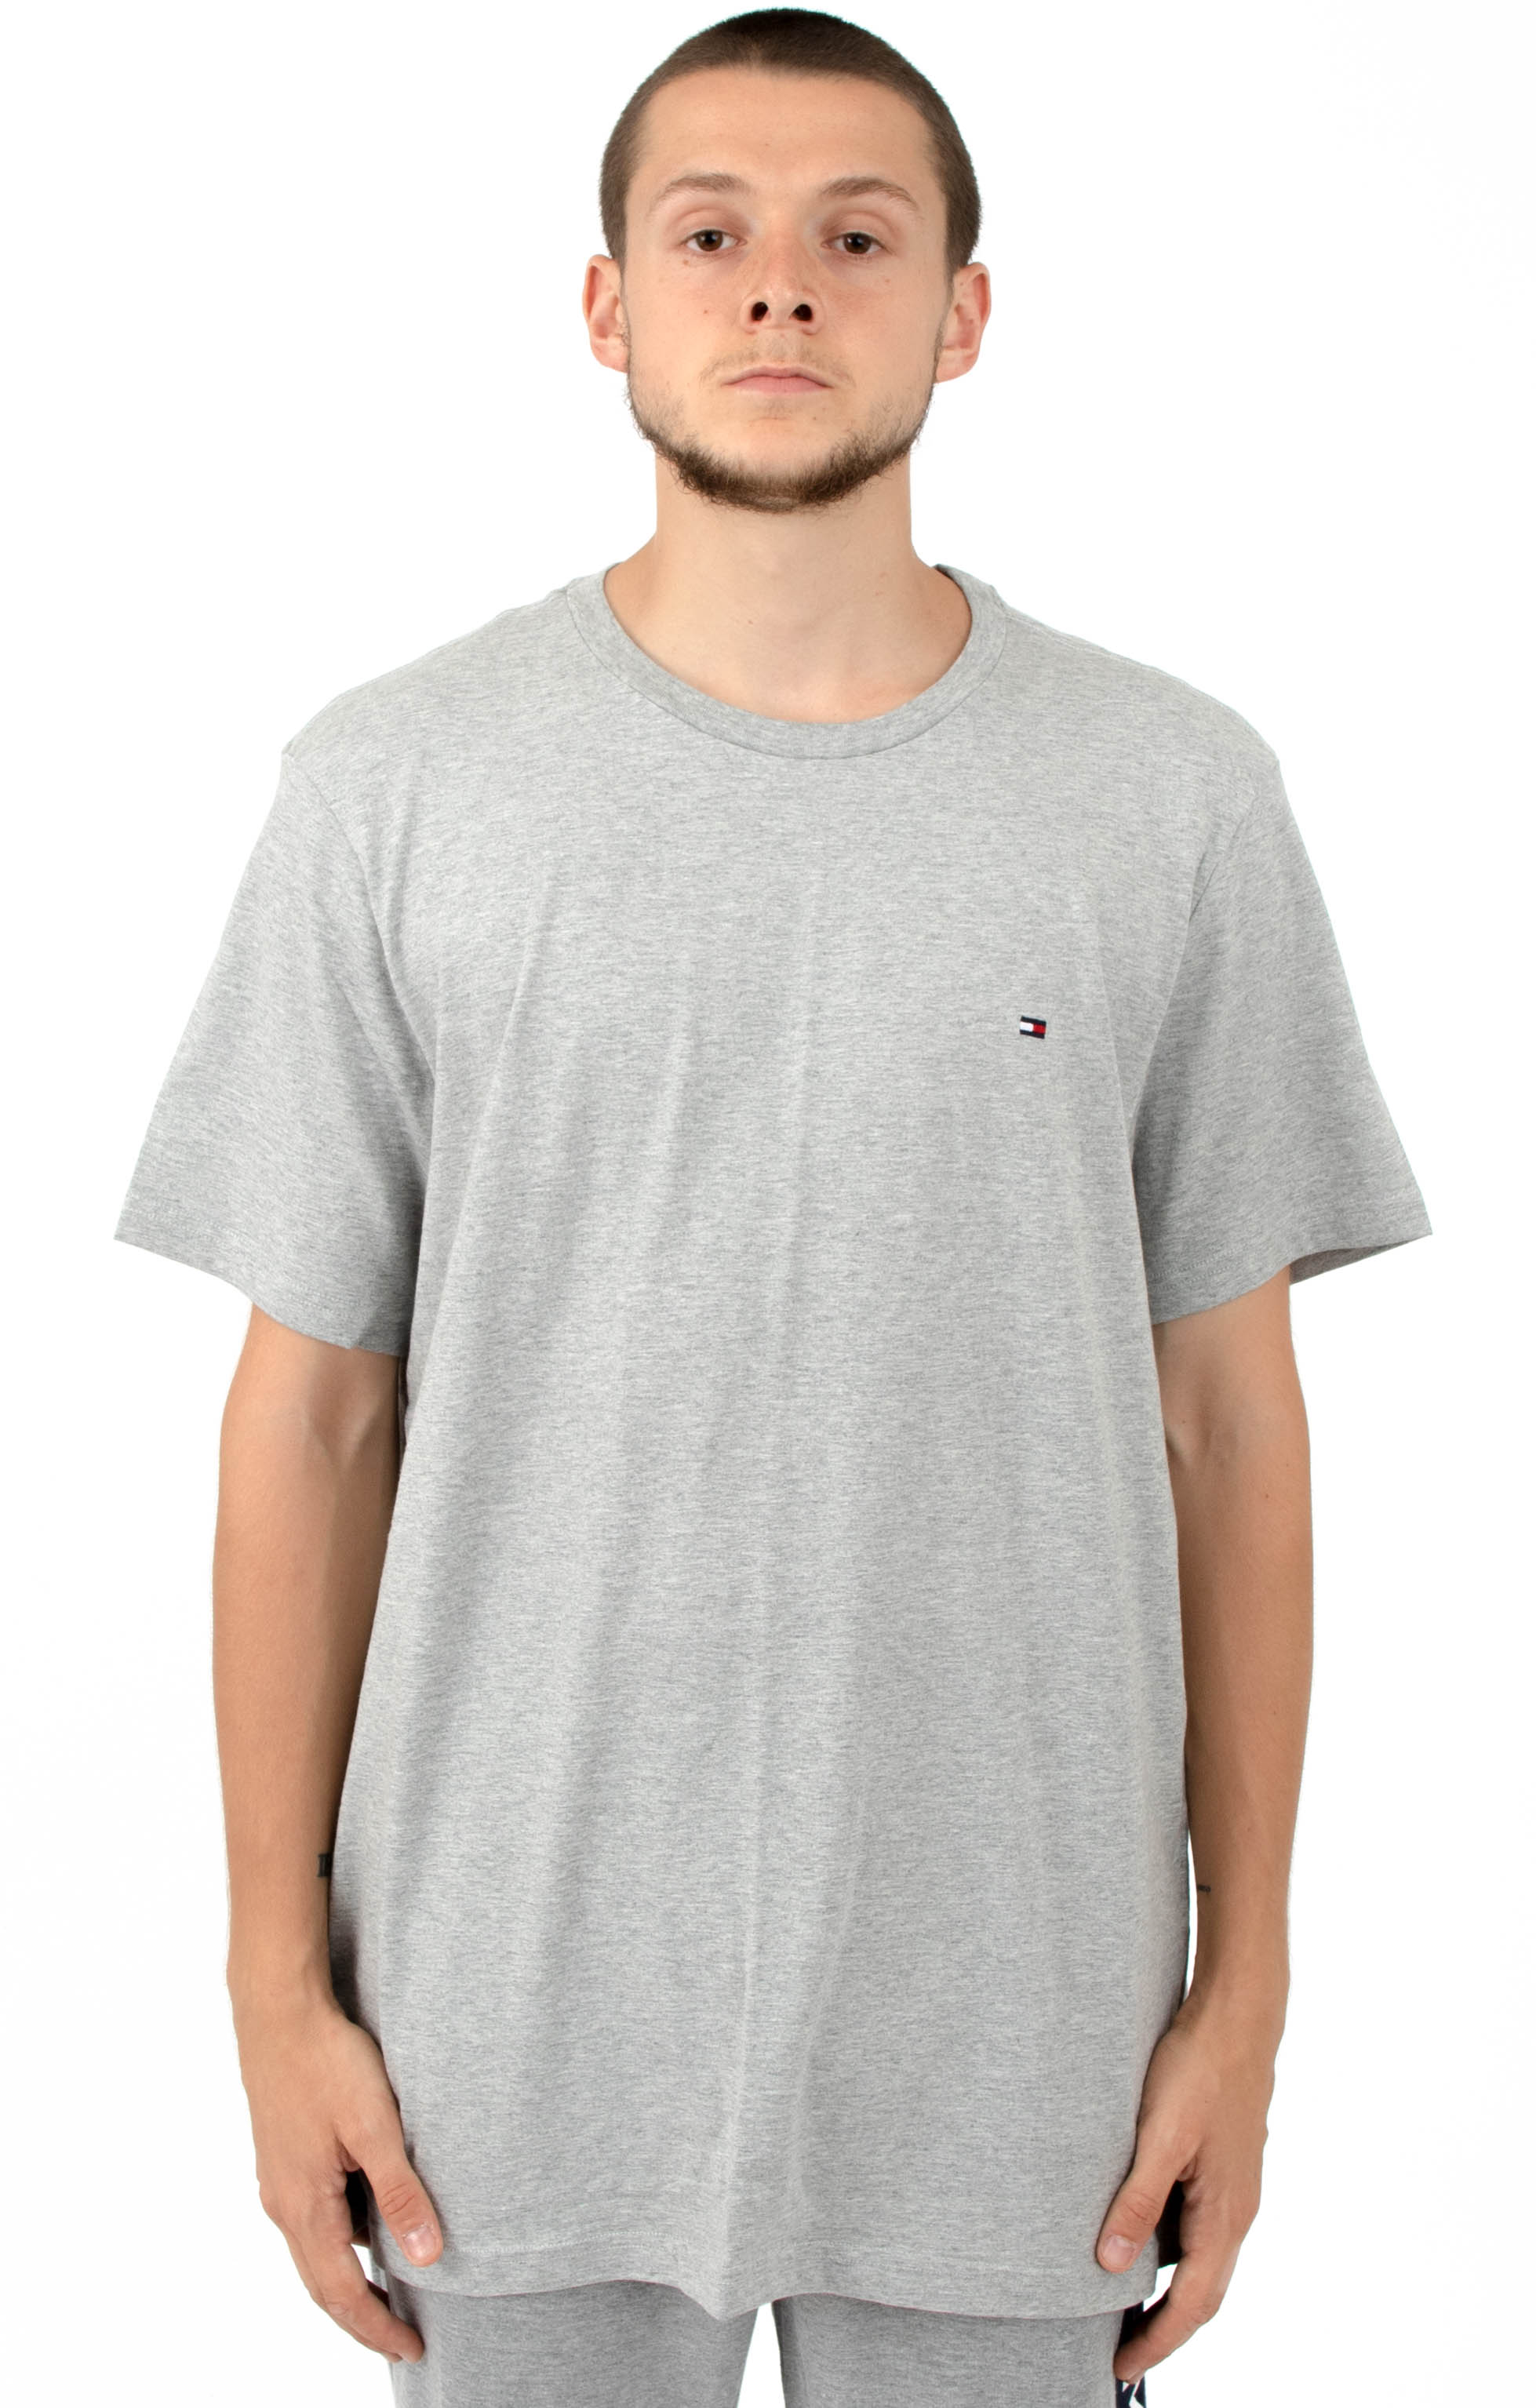 Core Flag Crew T-Shirt - Heather Grey